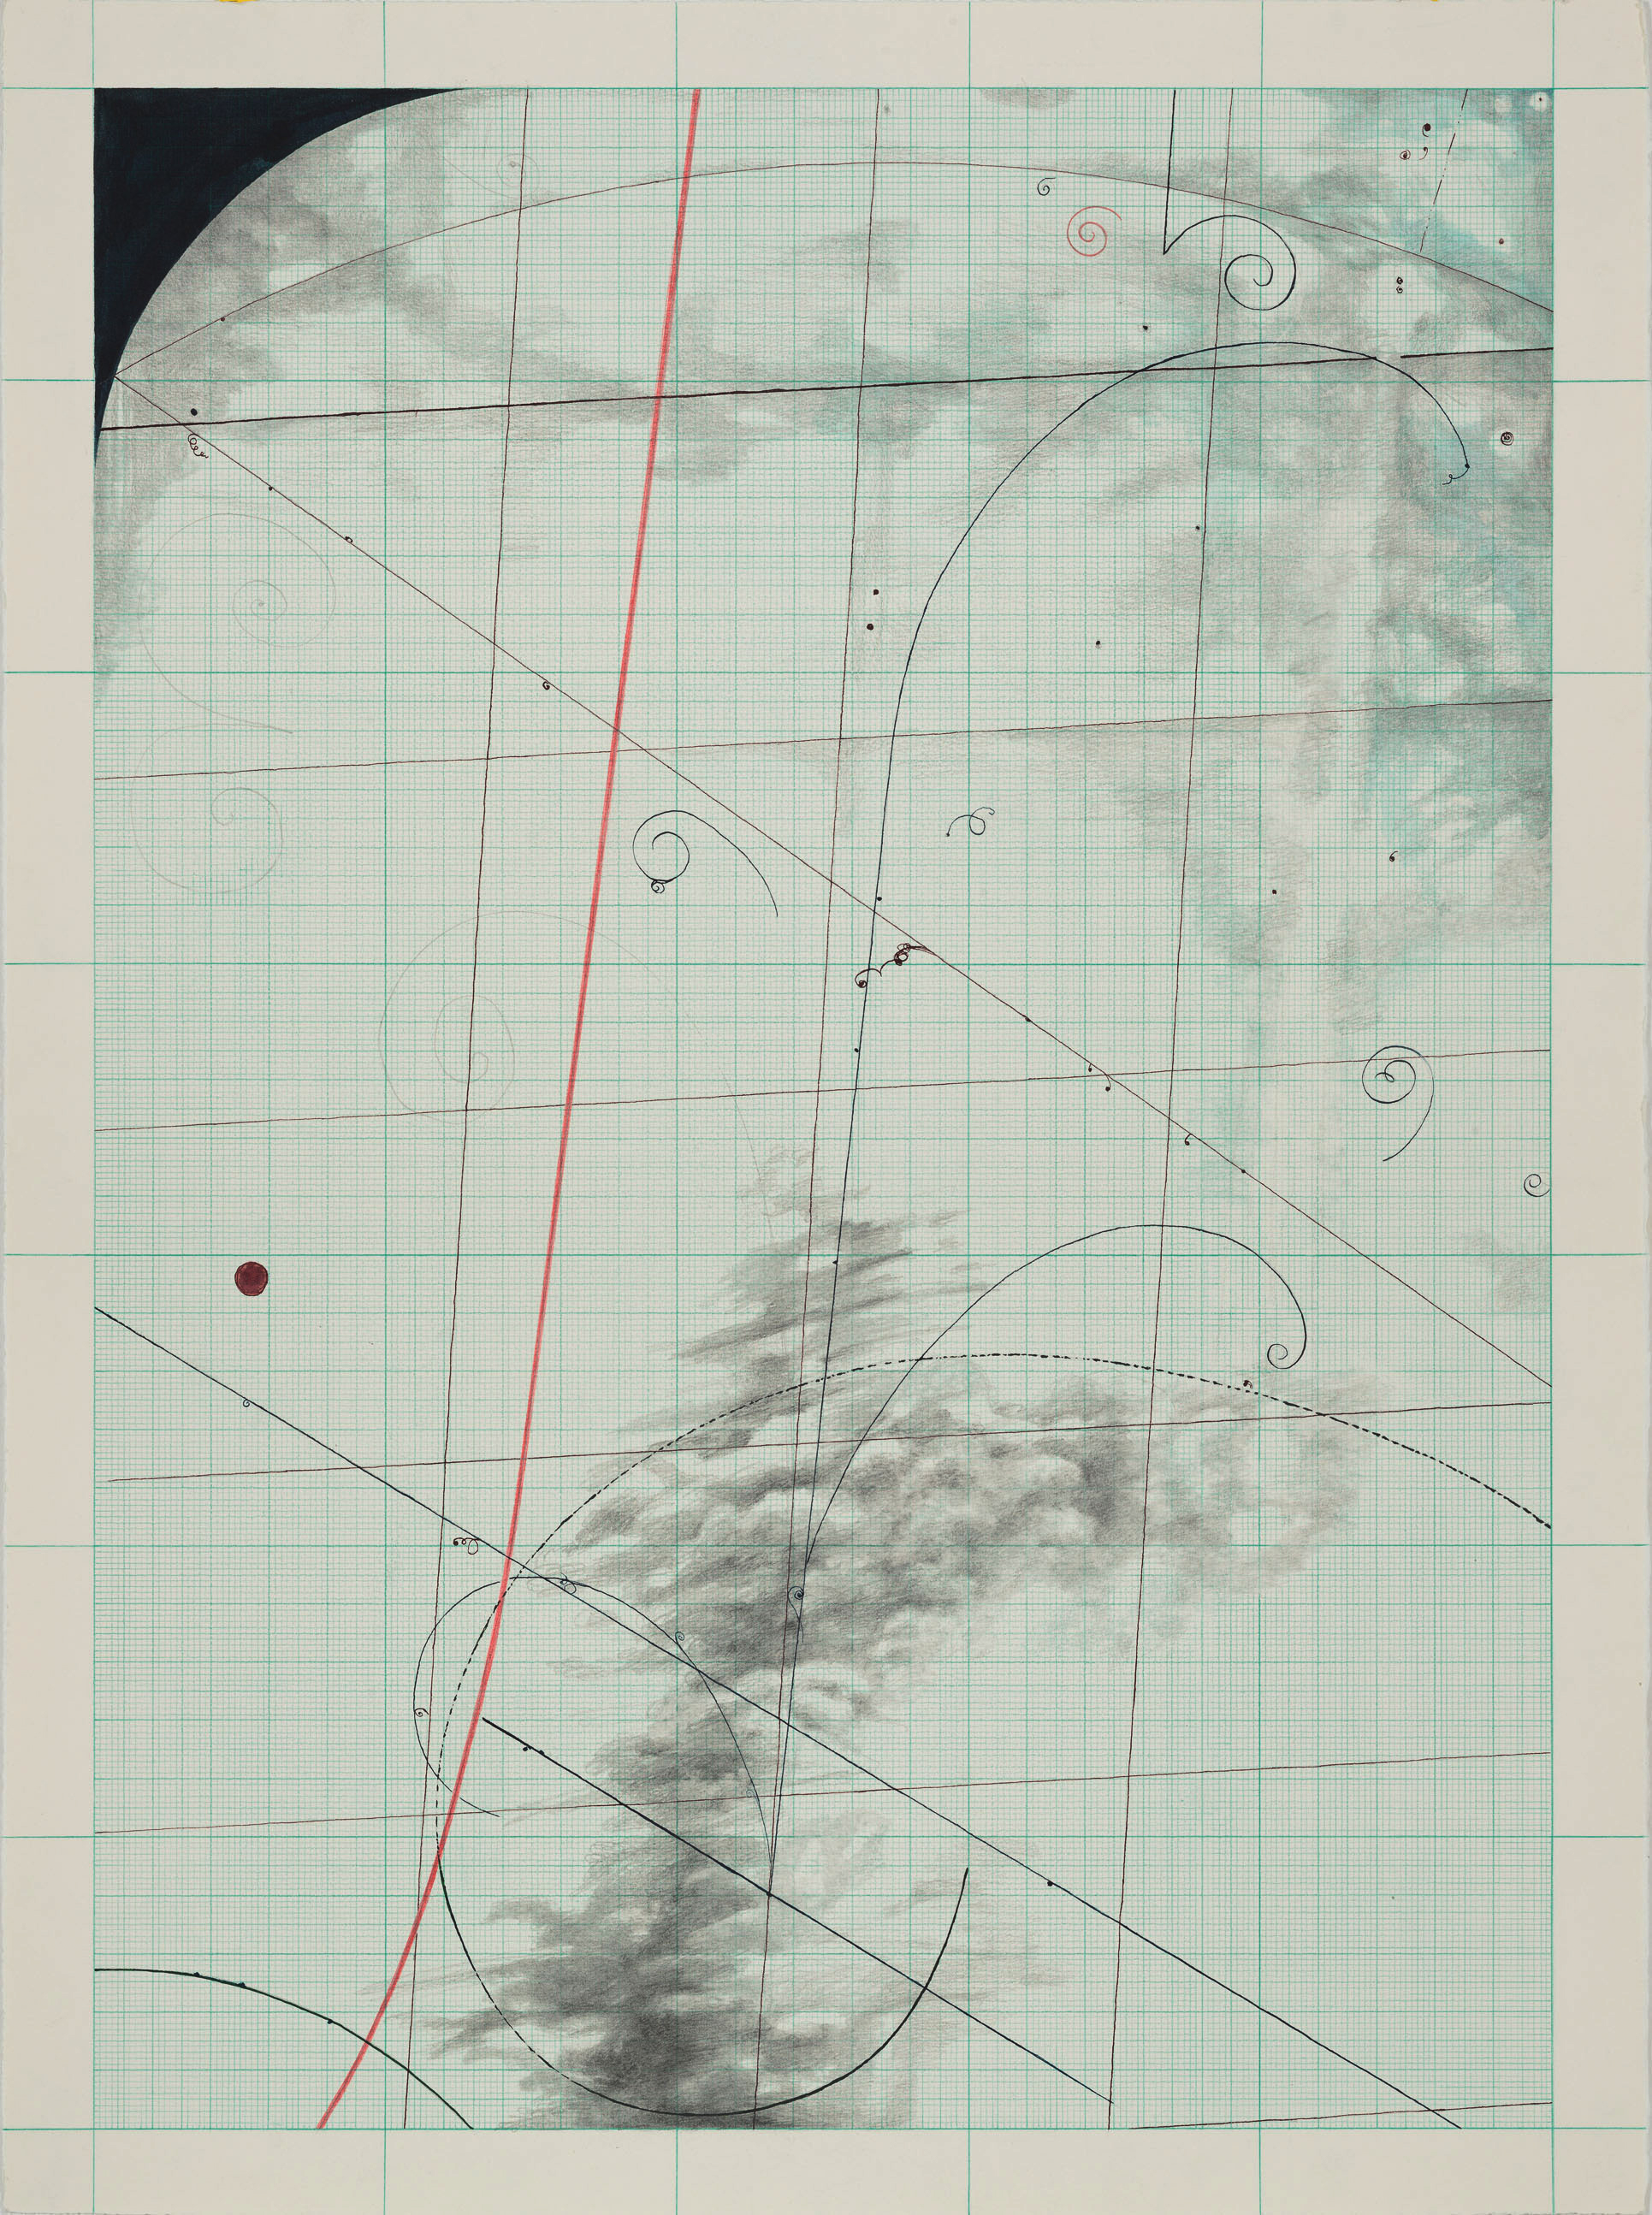 Antimatter, 2013, ink, water-soluble pencil and pencil on paper, 76 x 56 cm